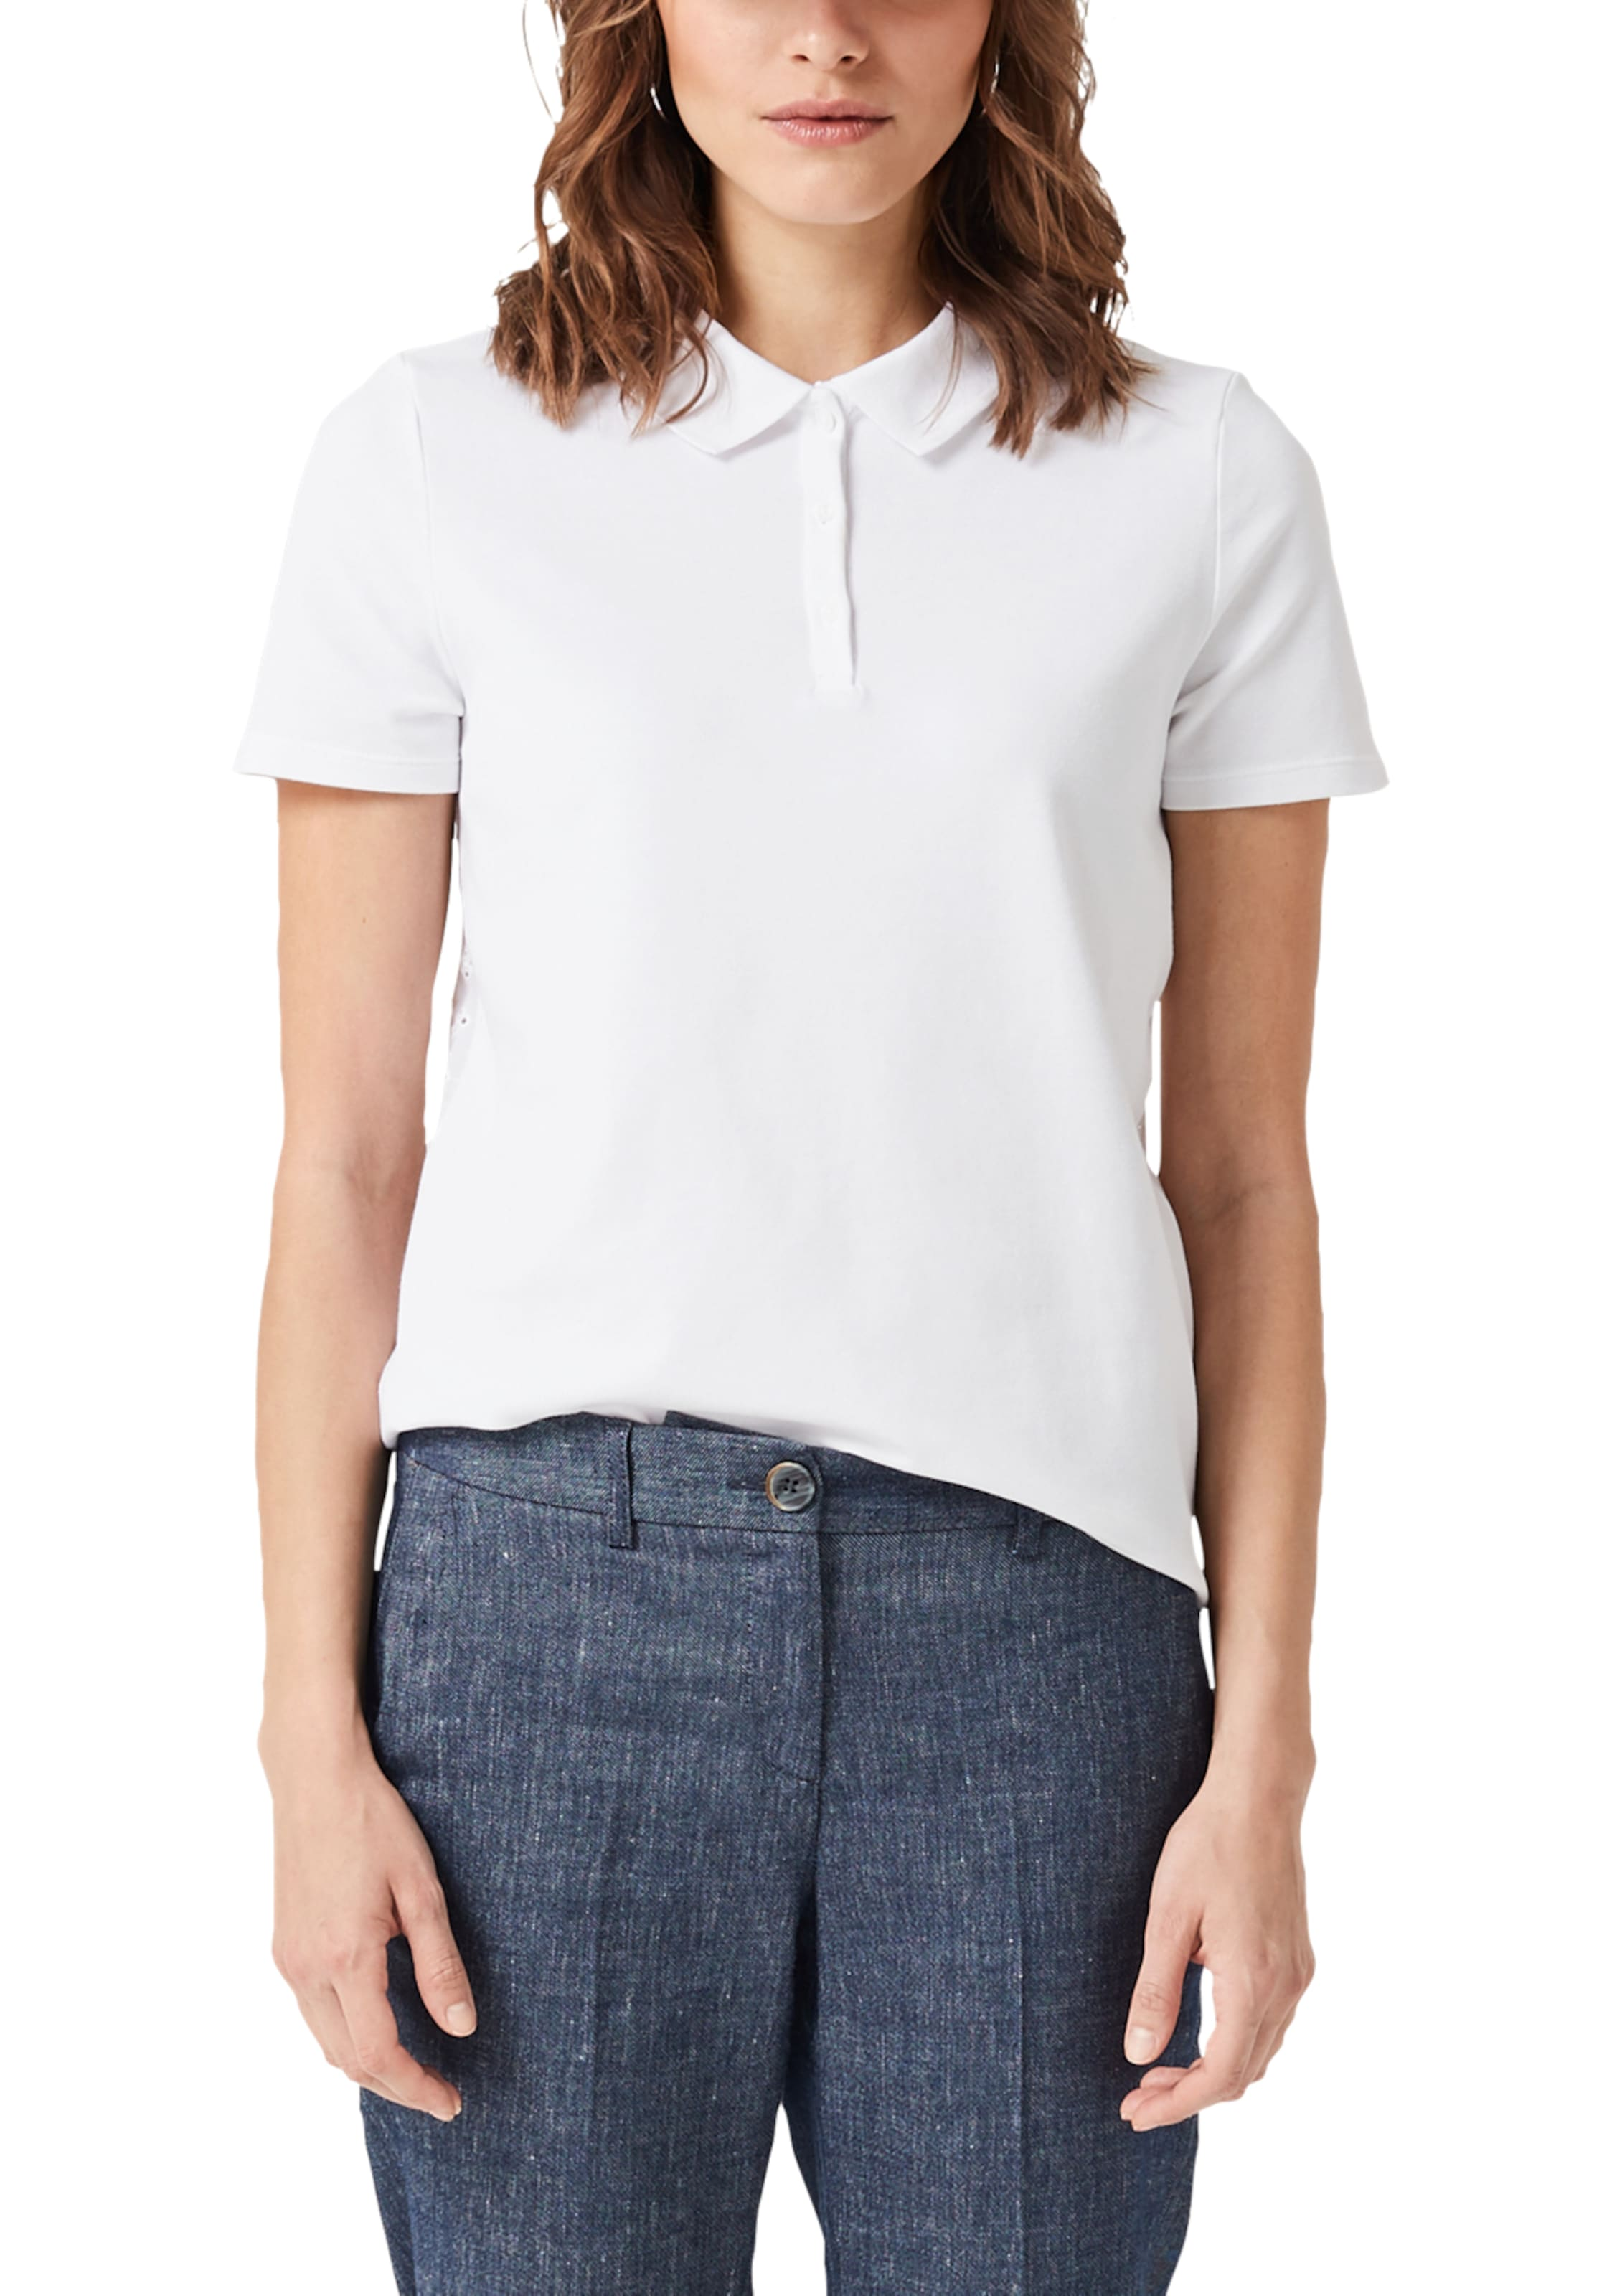 In Poloshirt Weiß Label Red oliver S IE92DWH